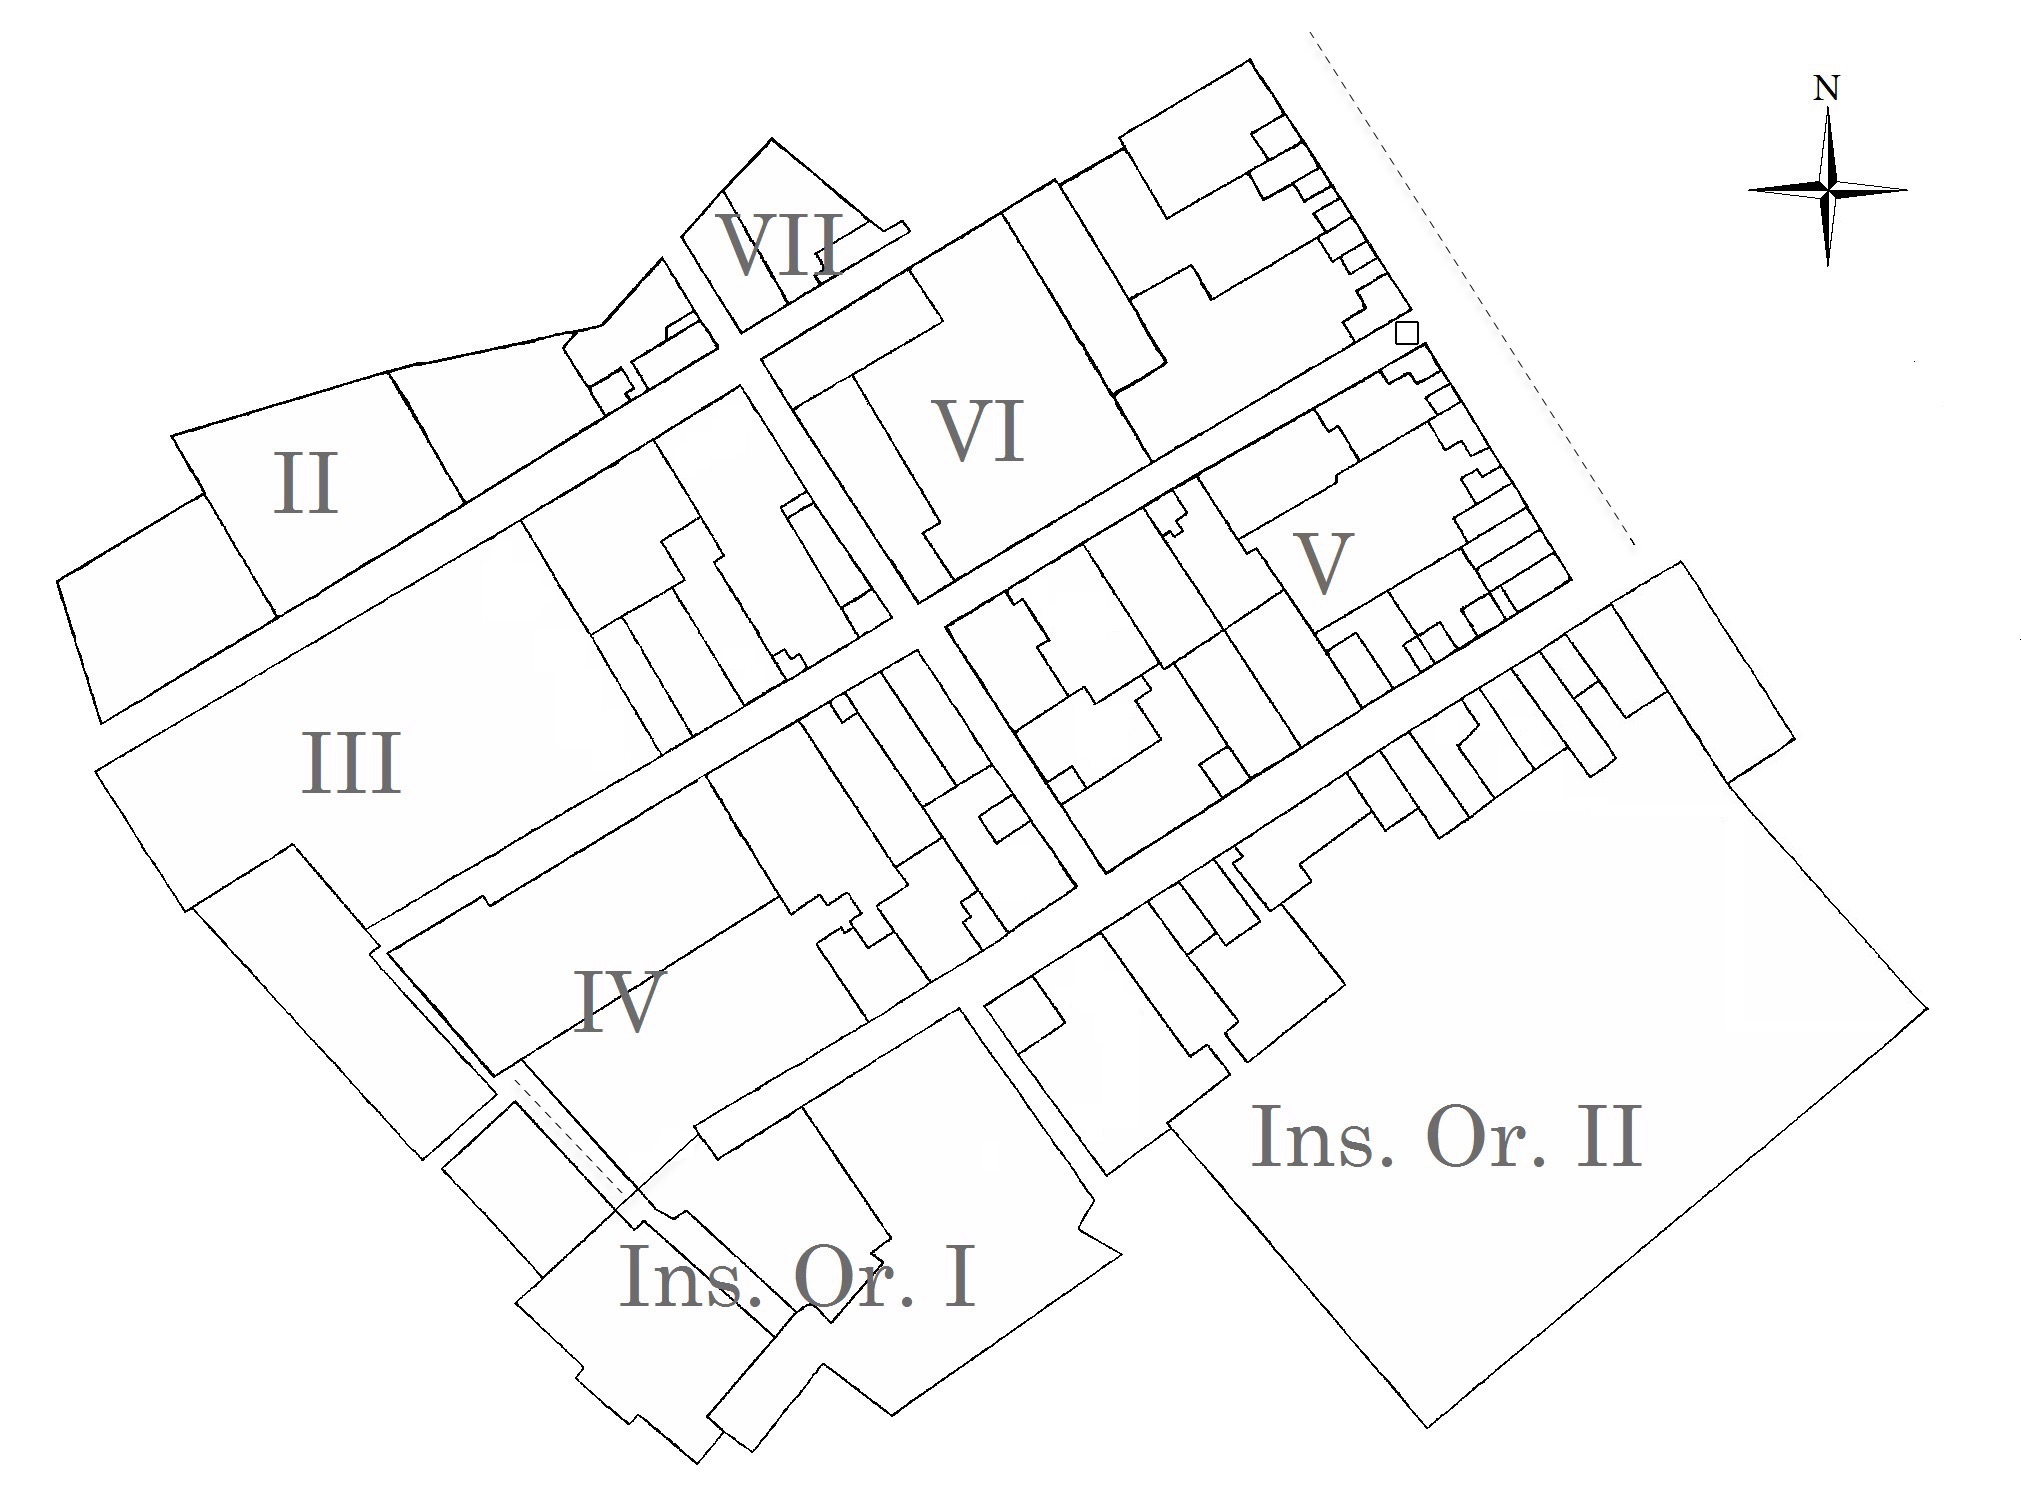 Map of Herculaneum properties